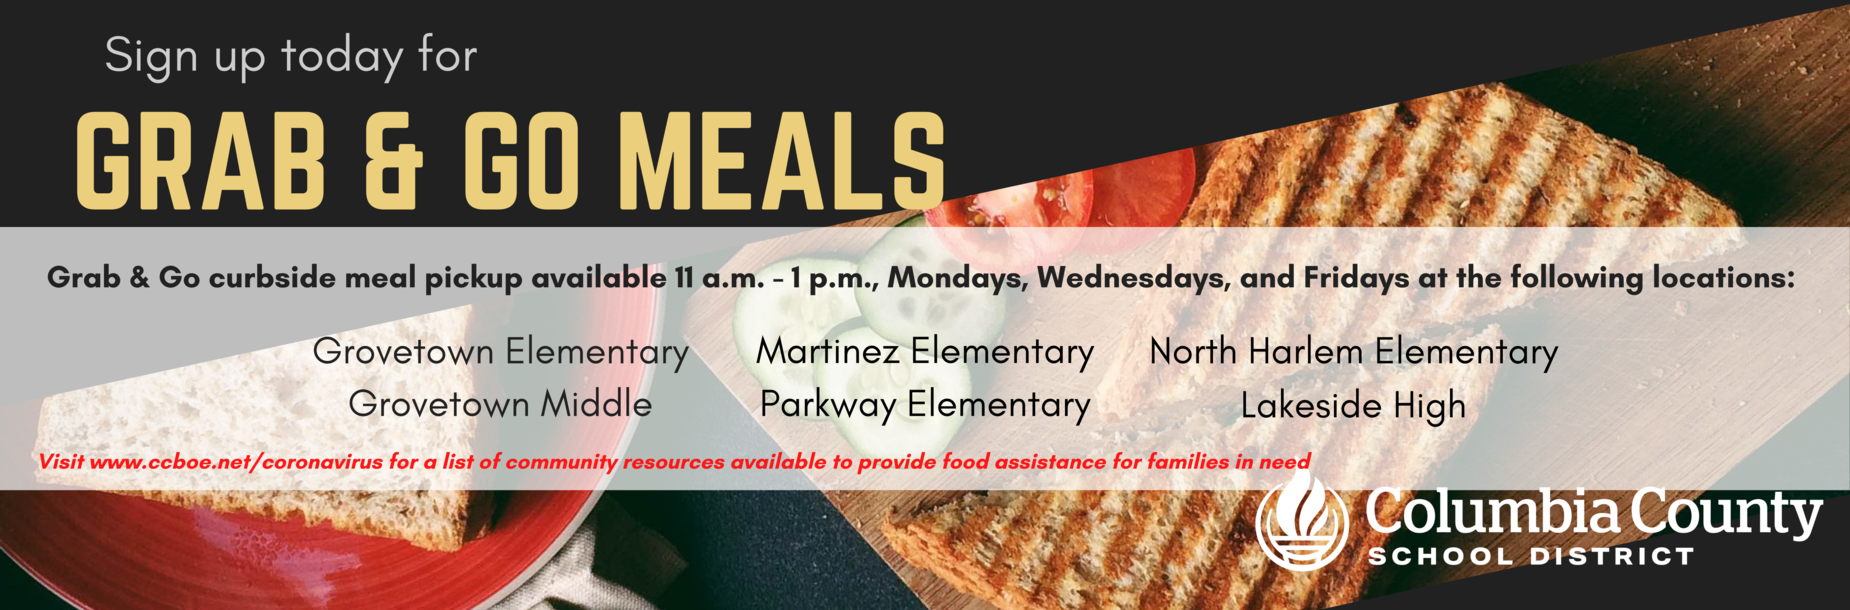 Grab & Go Meal pickup up Monday, Wednesday, Friday 11-1 at Grovetown Elementary, Grovetown Middle, Martinez Elementary, Parkway Elementary, North Harlem Elementary, South Columbia Elementary, Lakeside High